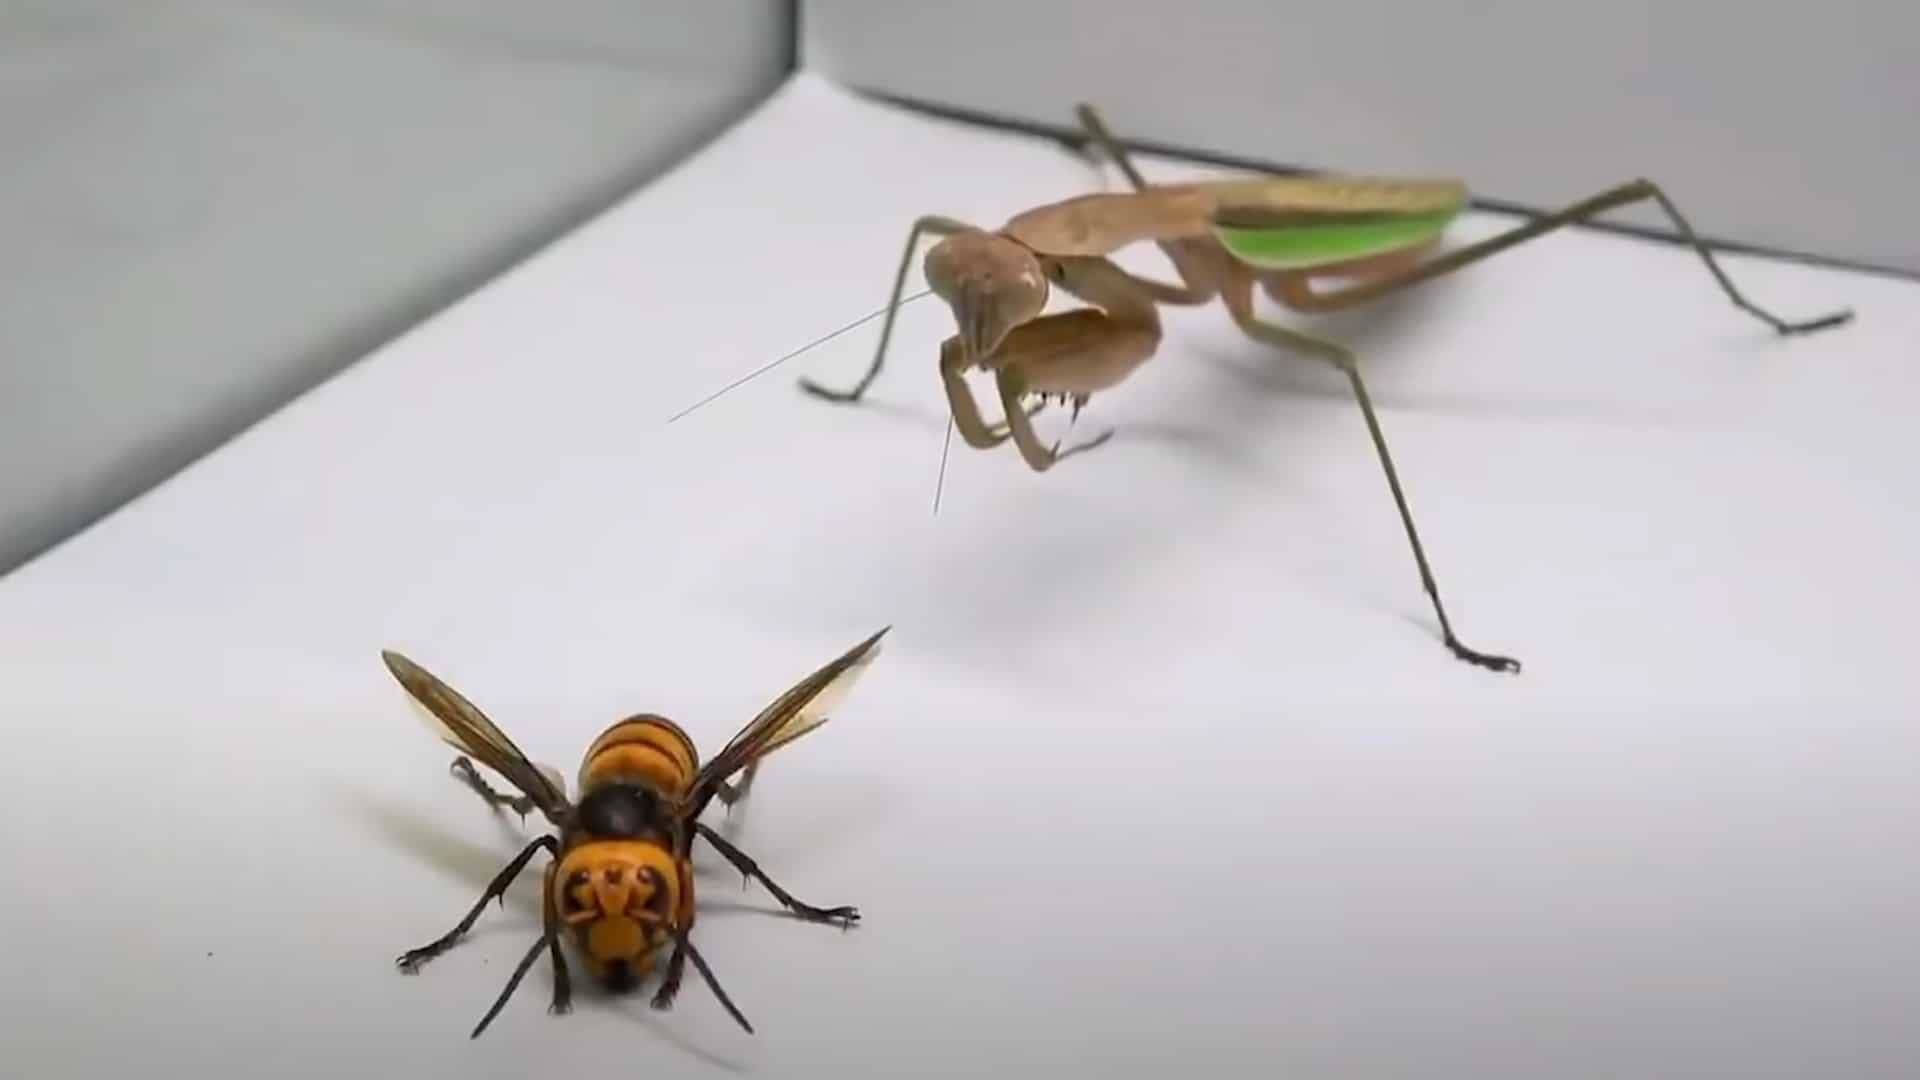 Praying Mantis vs Murder Hornet. Who Wins? Who Dies?